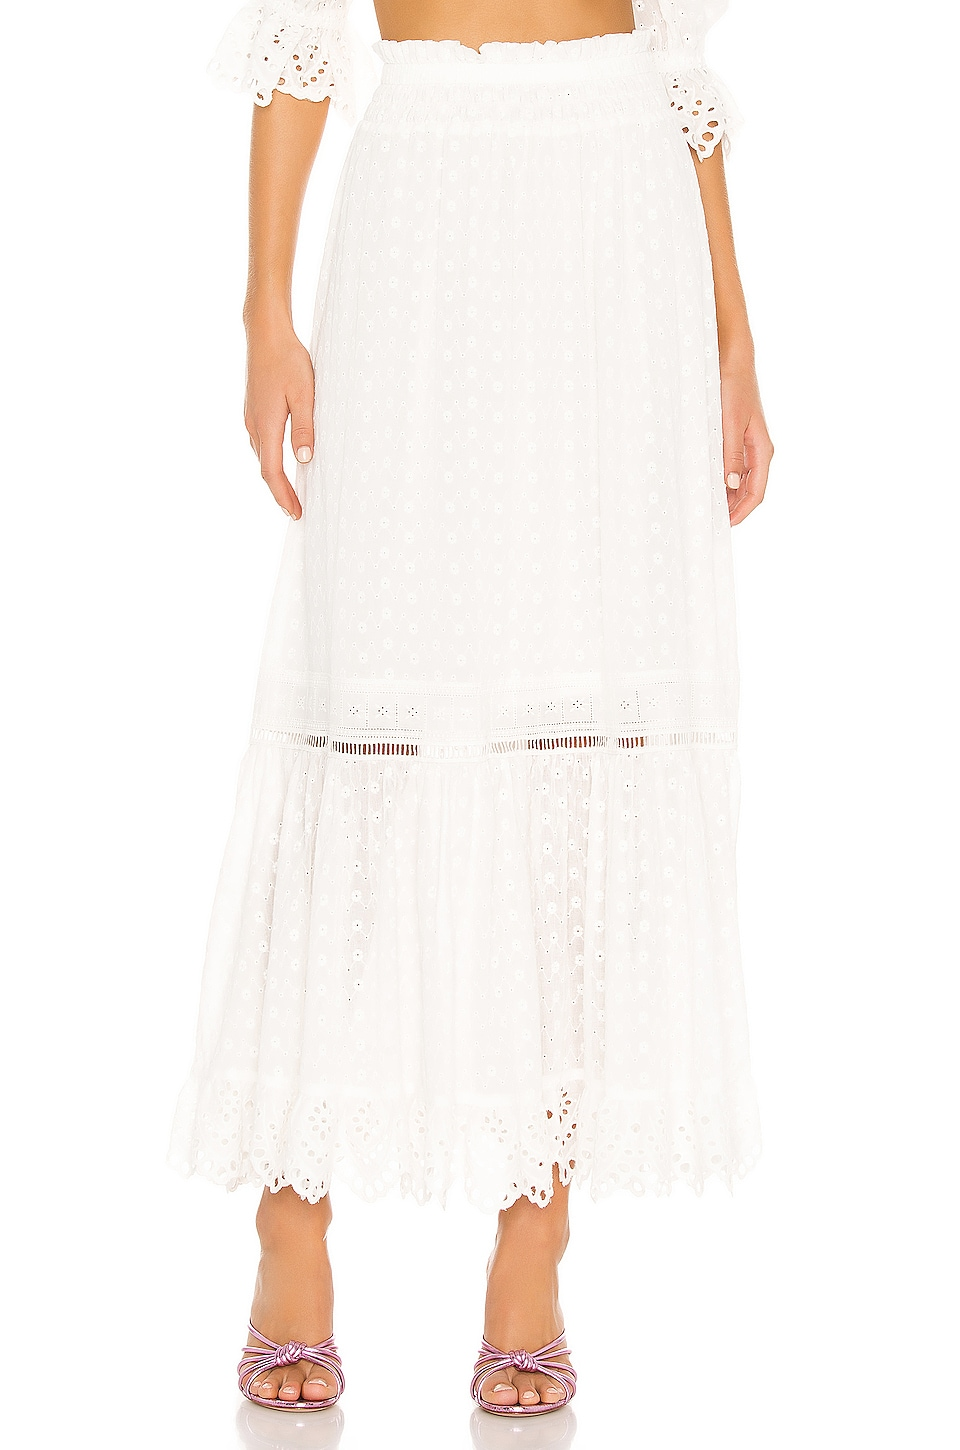 Spell & The Gypsy Collective Daisy Chain Maxi Skirt en White